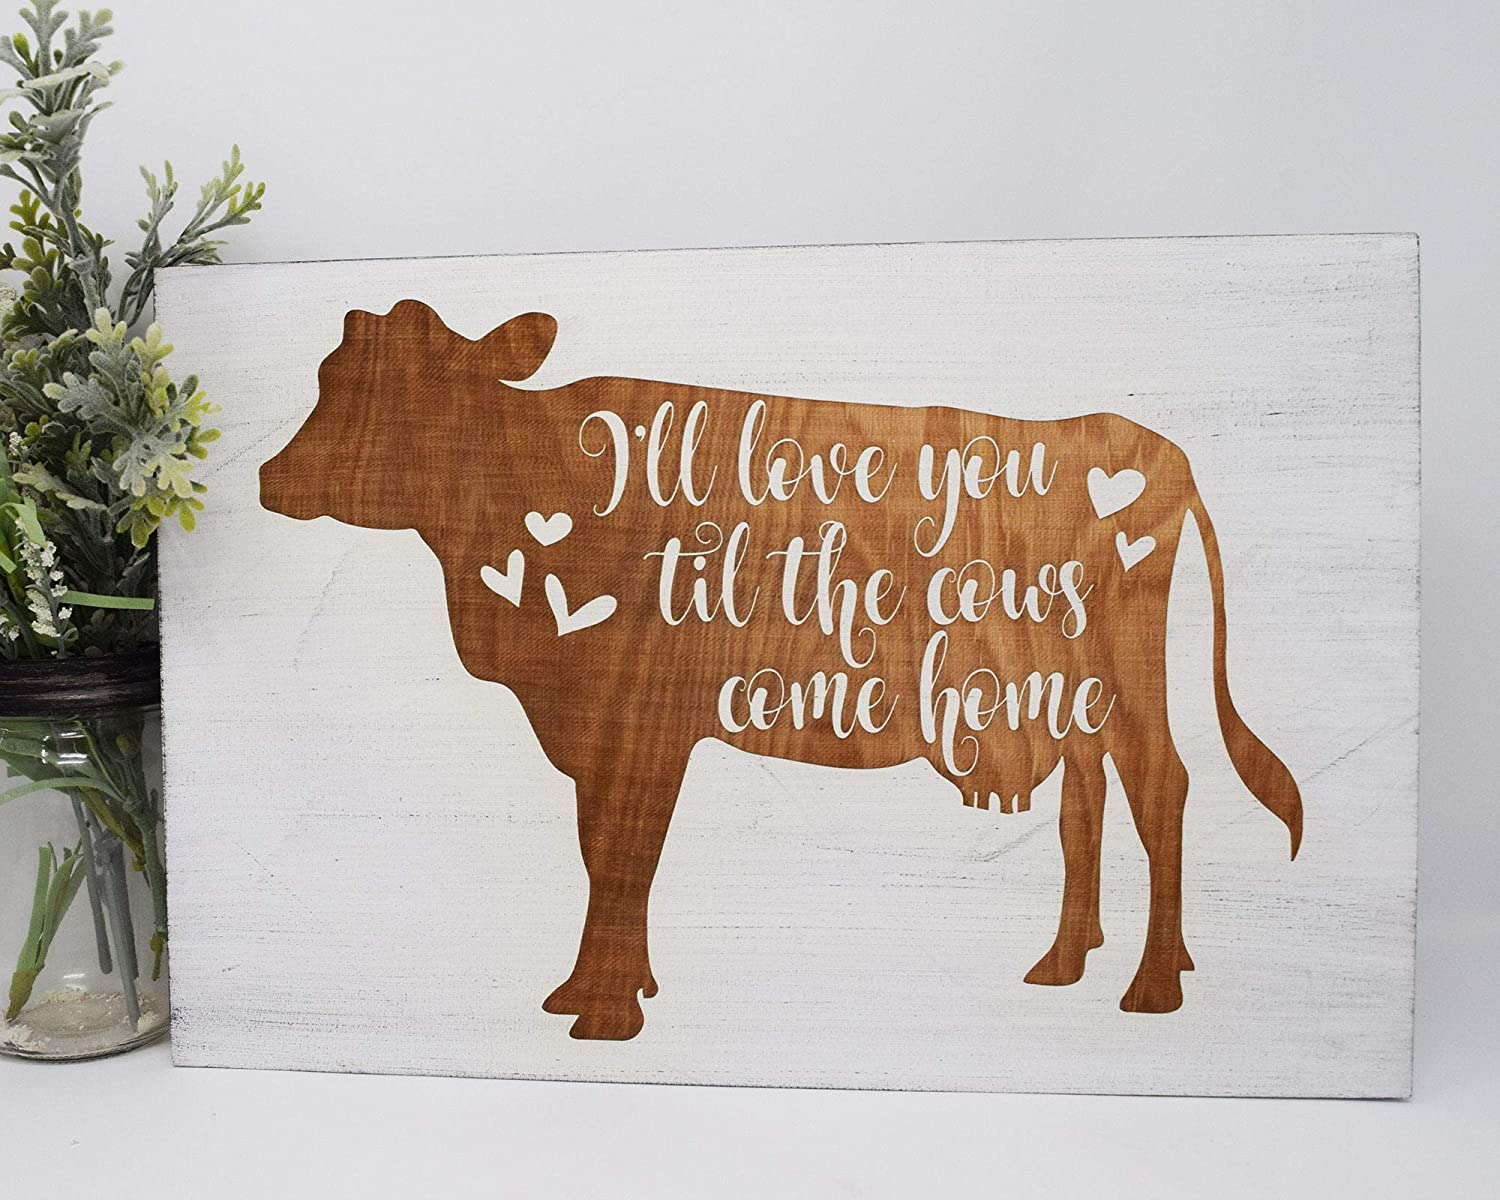 PotteLove Rustic Wooden Plaque Wall Art Hanging Sign I'll Love You Til The Cows Come Home Engraved Wood Sign 15